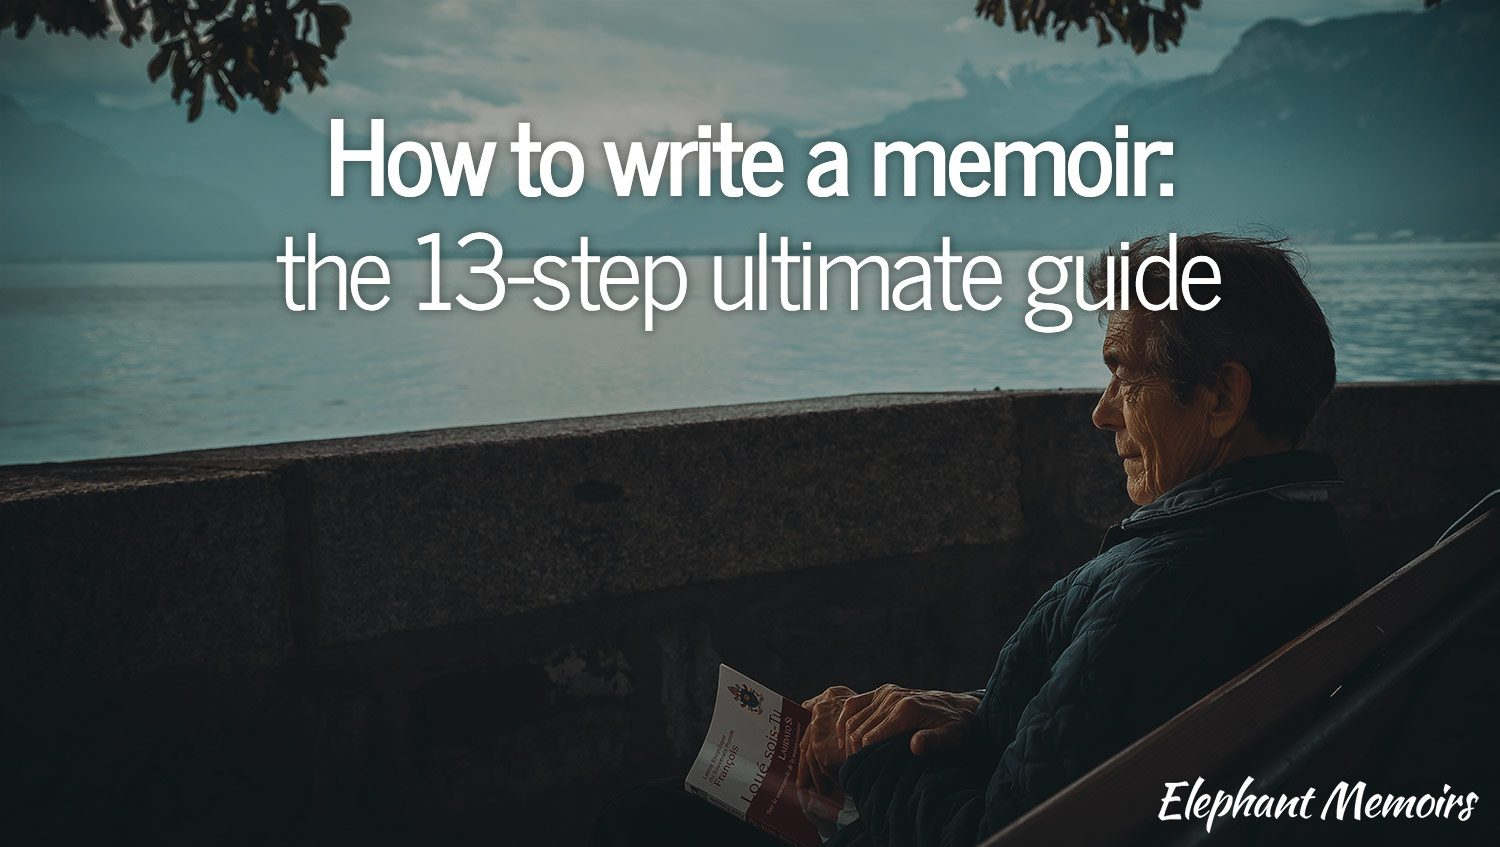 how to write a memoir: the ultimate 13-step guide